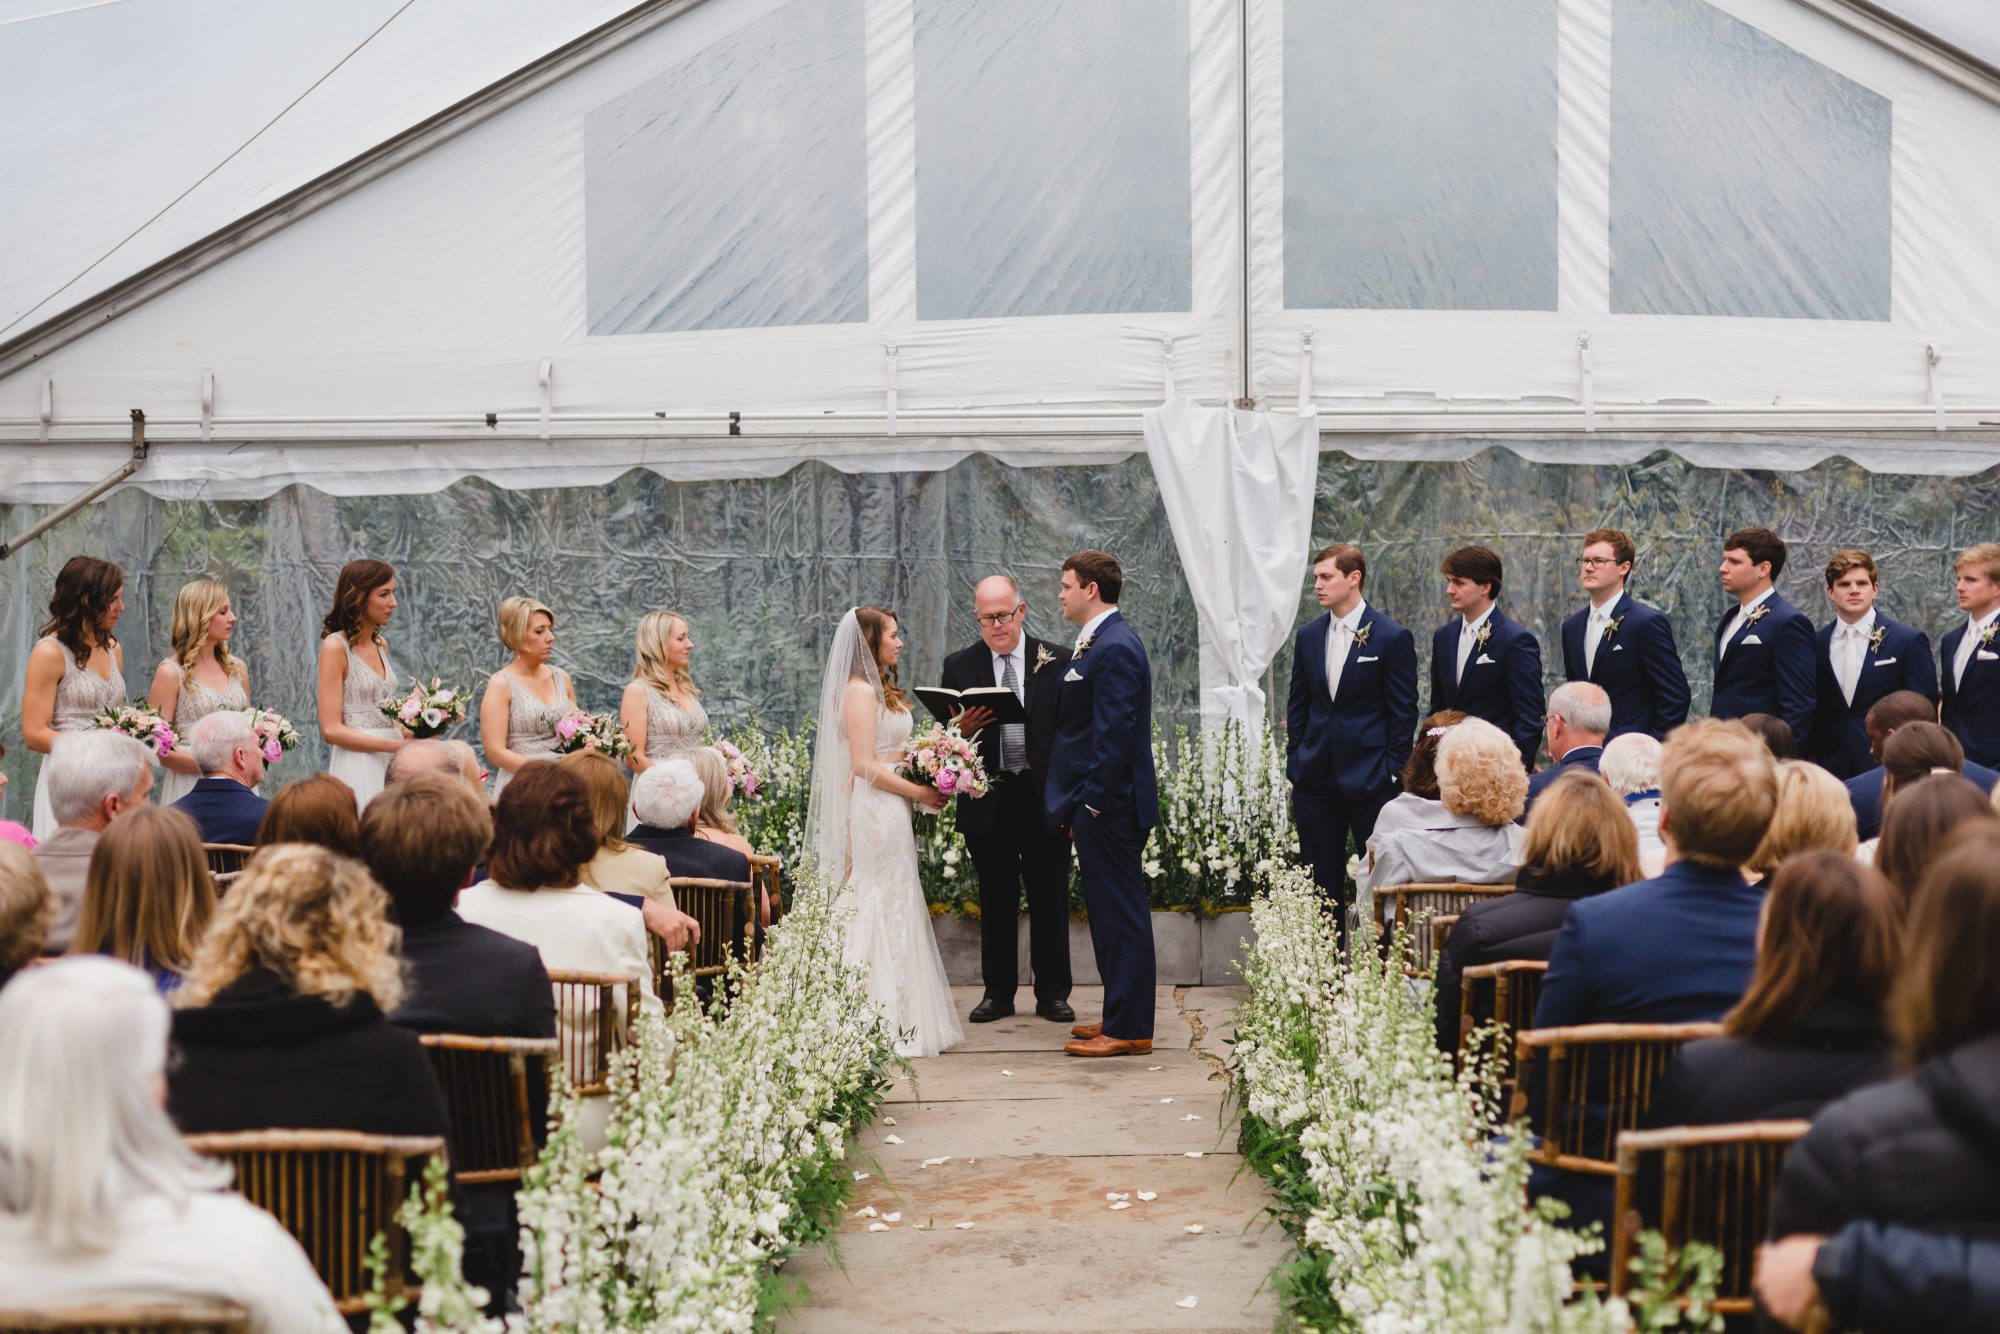 Ceremony Drizzled with Romance